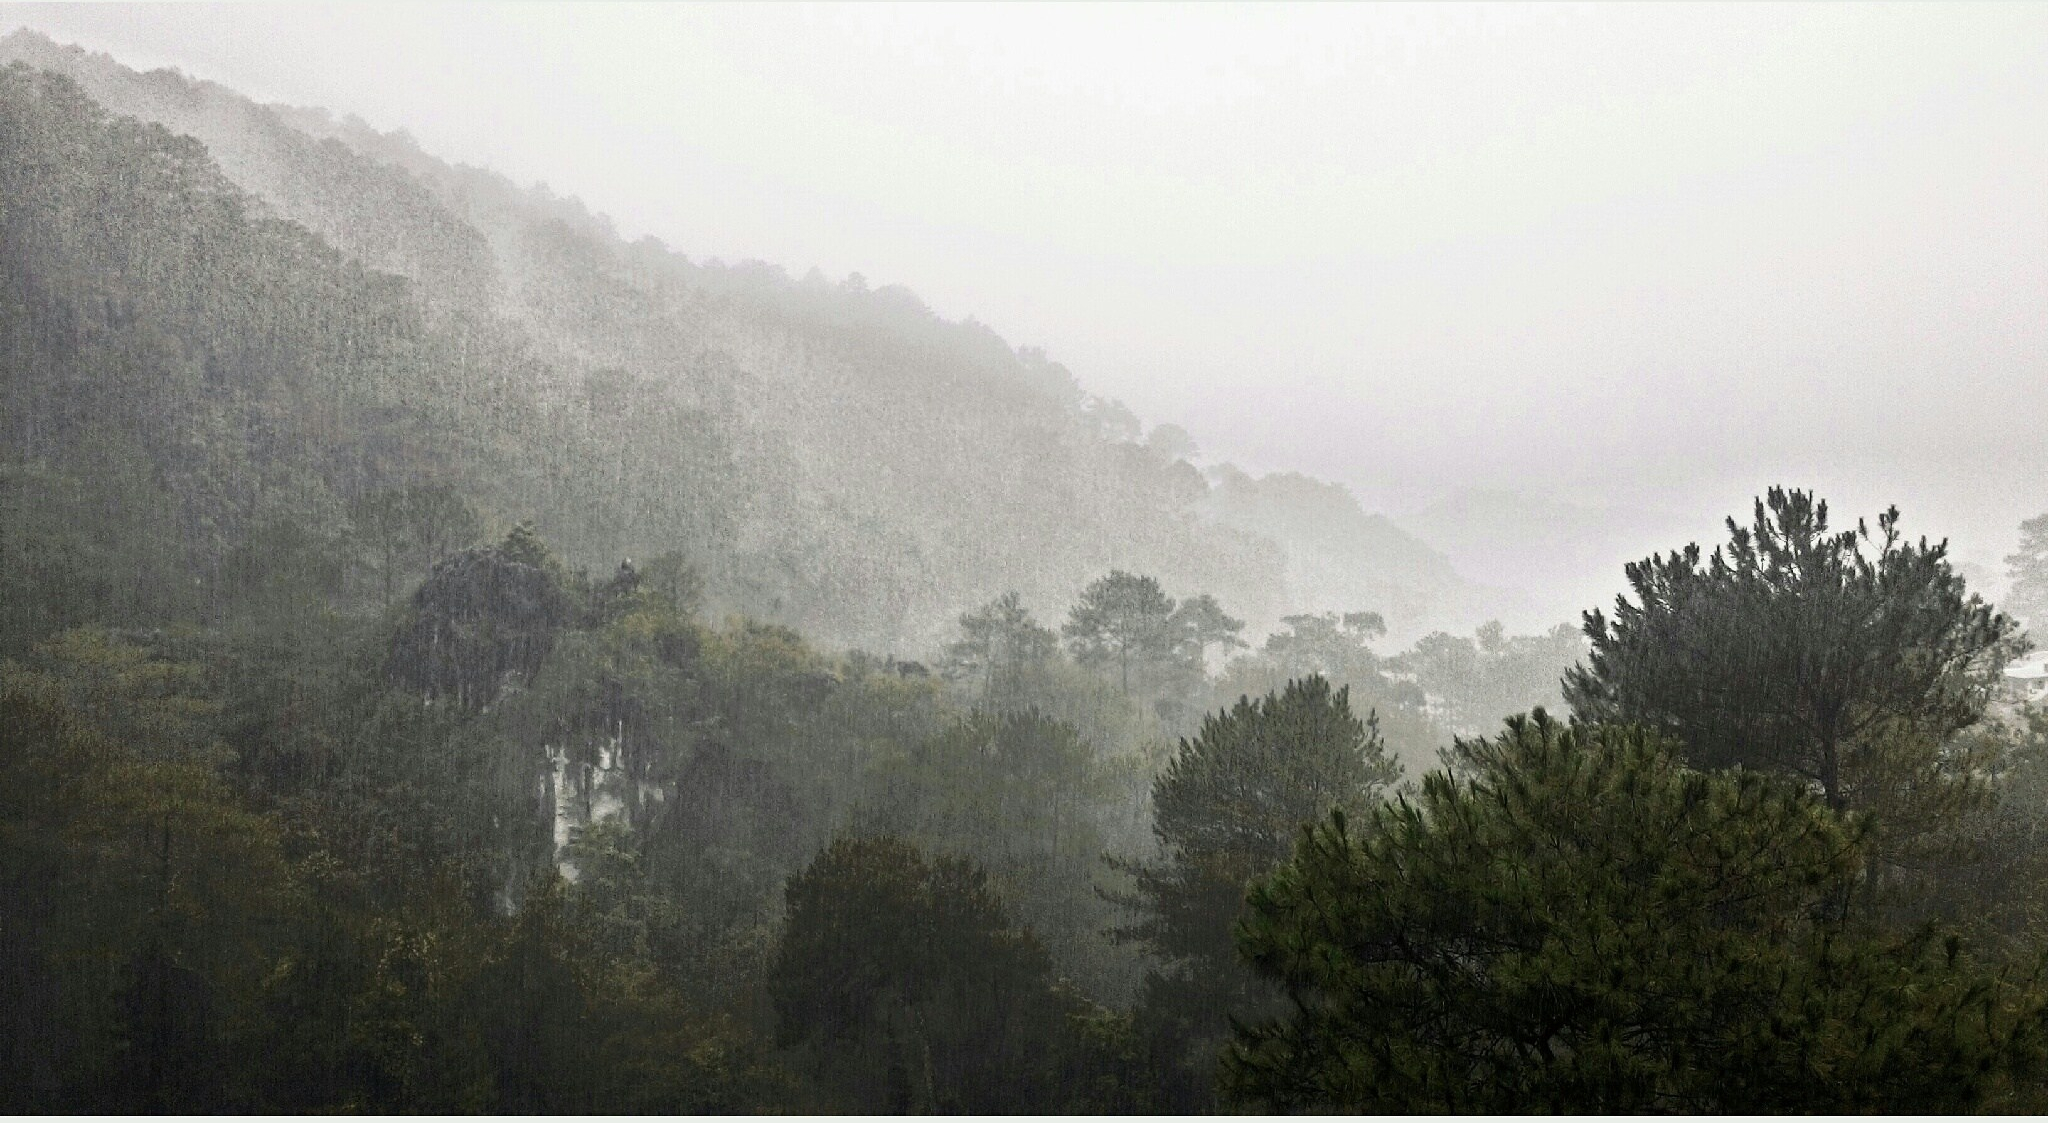 inandakos-sagada-rainy-day